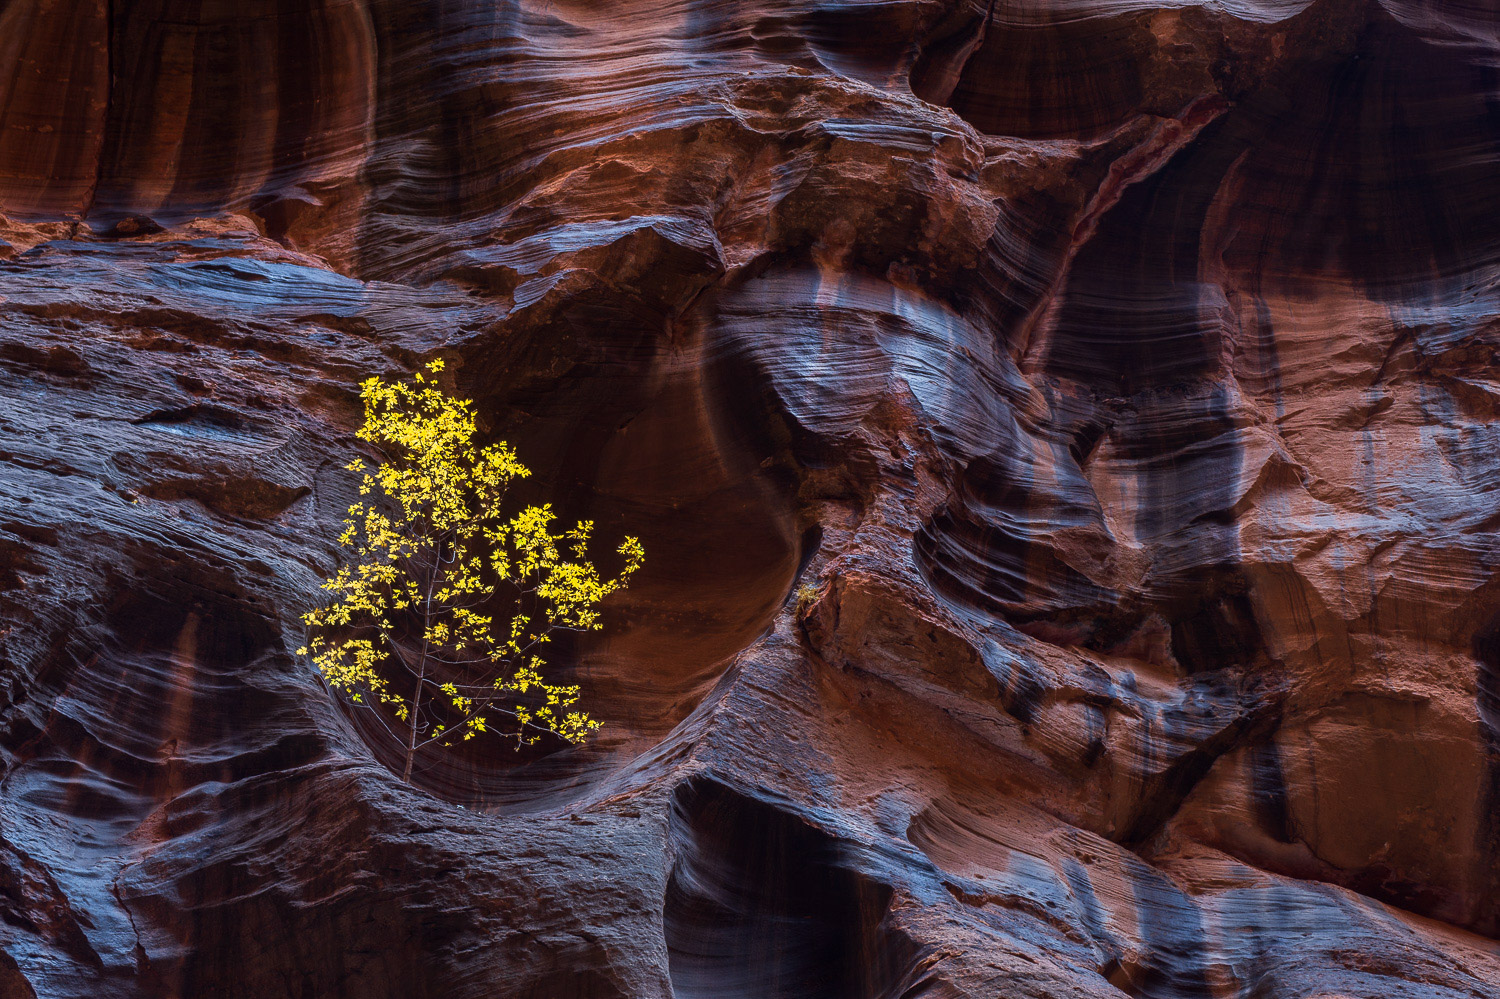 A stunted Cottonwood Tree finds a perch in the most unlikely place in the Virgin River Narrows.